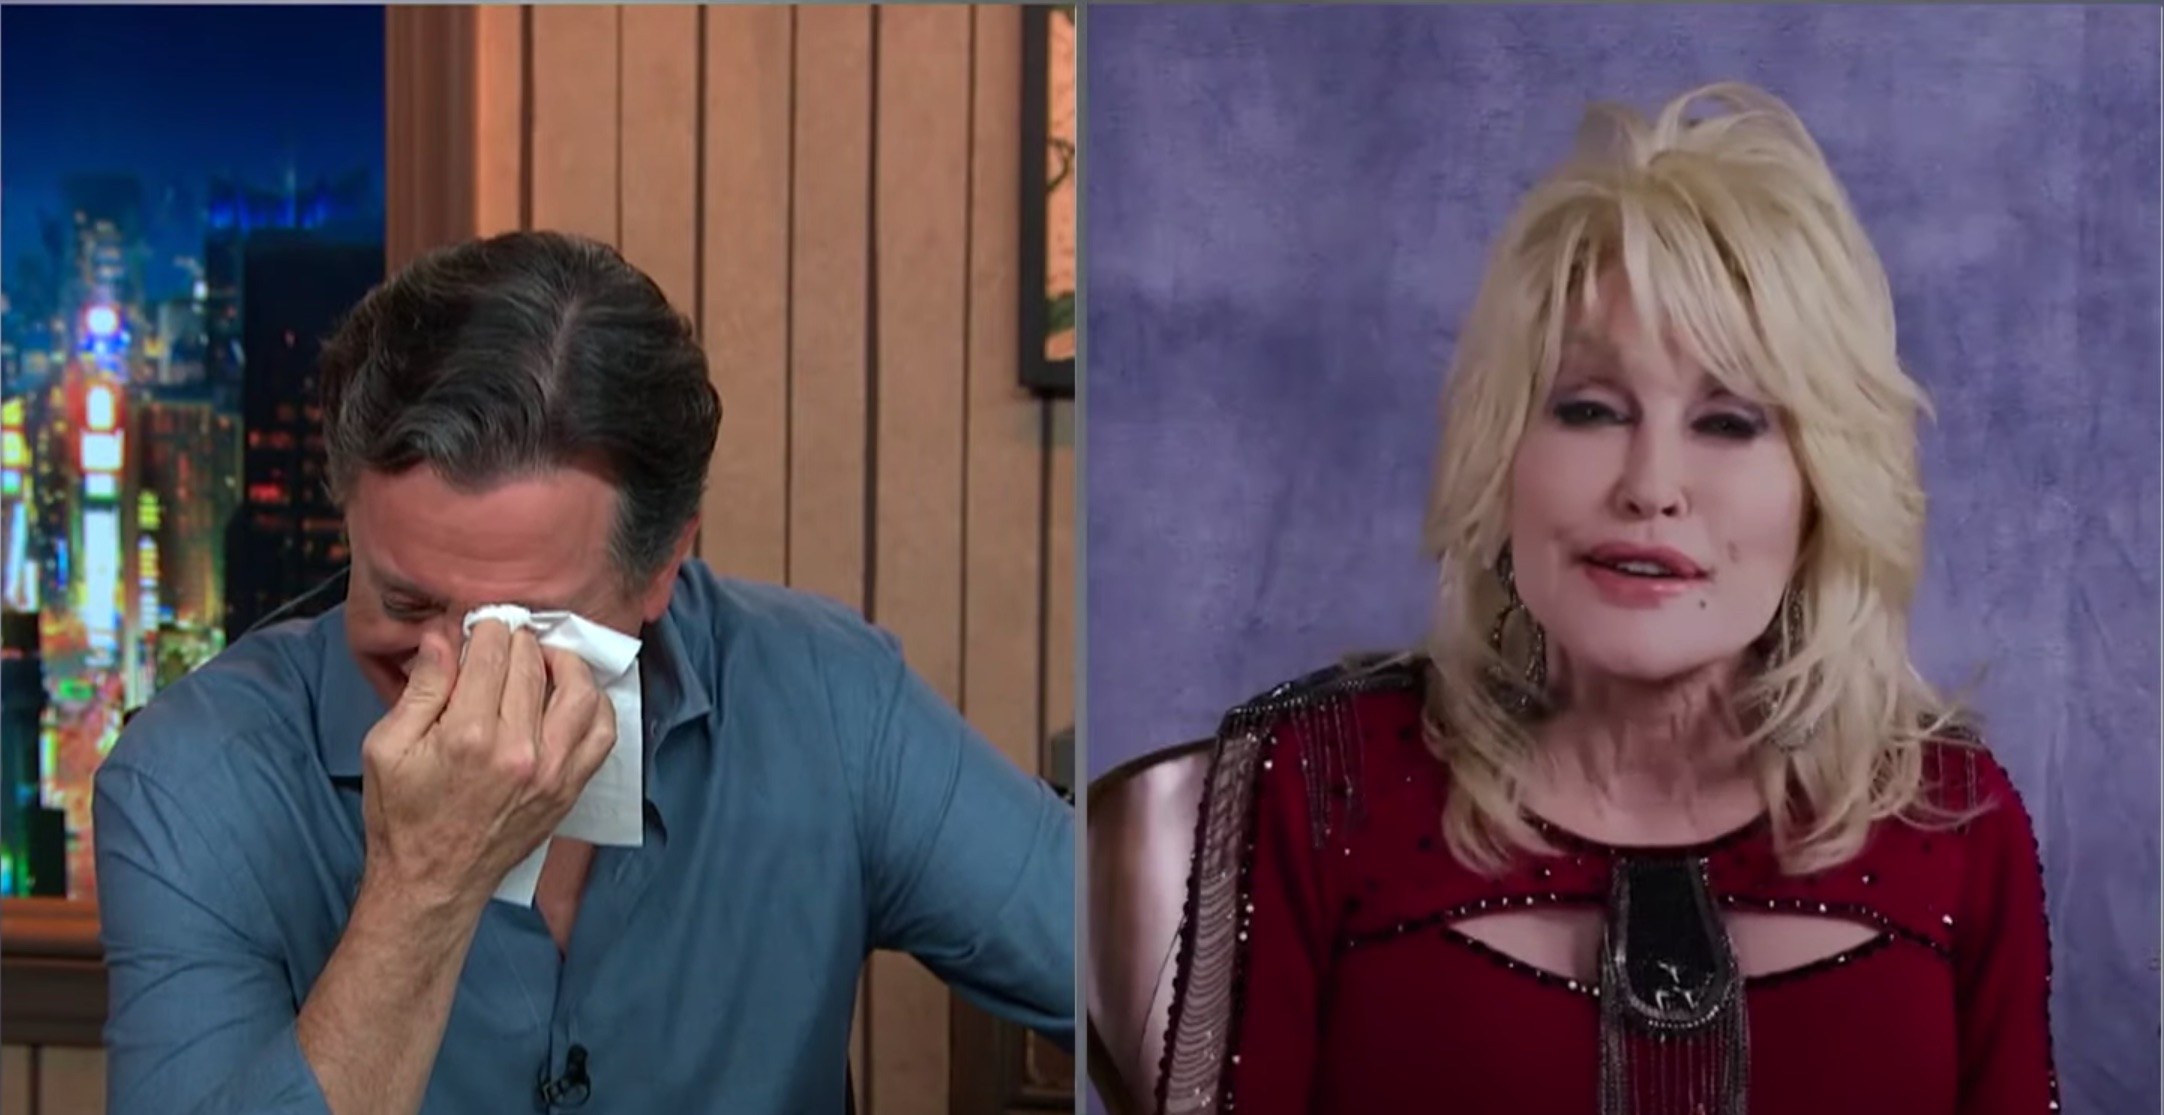 Dolly Parton Made Stephen Colbert Cry With an Old Folk Song on 'The Late Show' – Rolling Stone